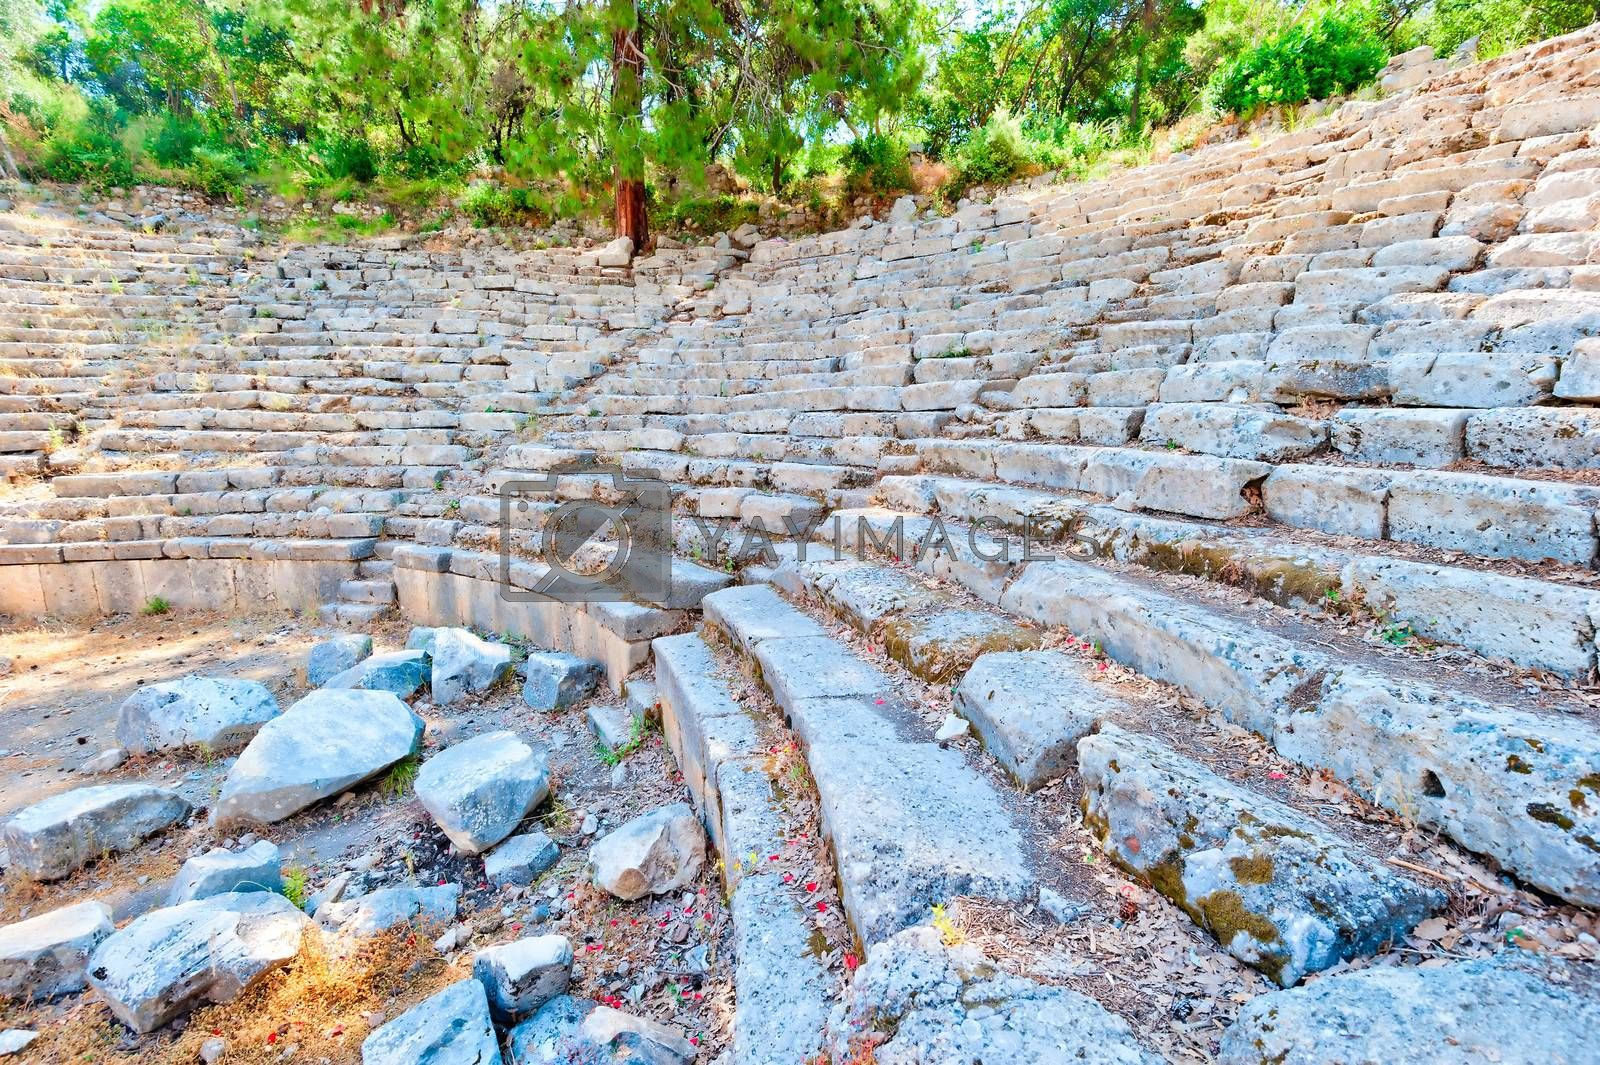 Ruins of the ancient amphitheater in Turkey